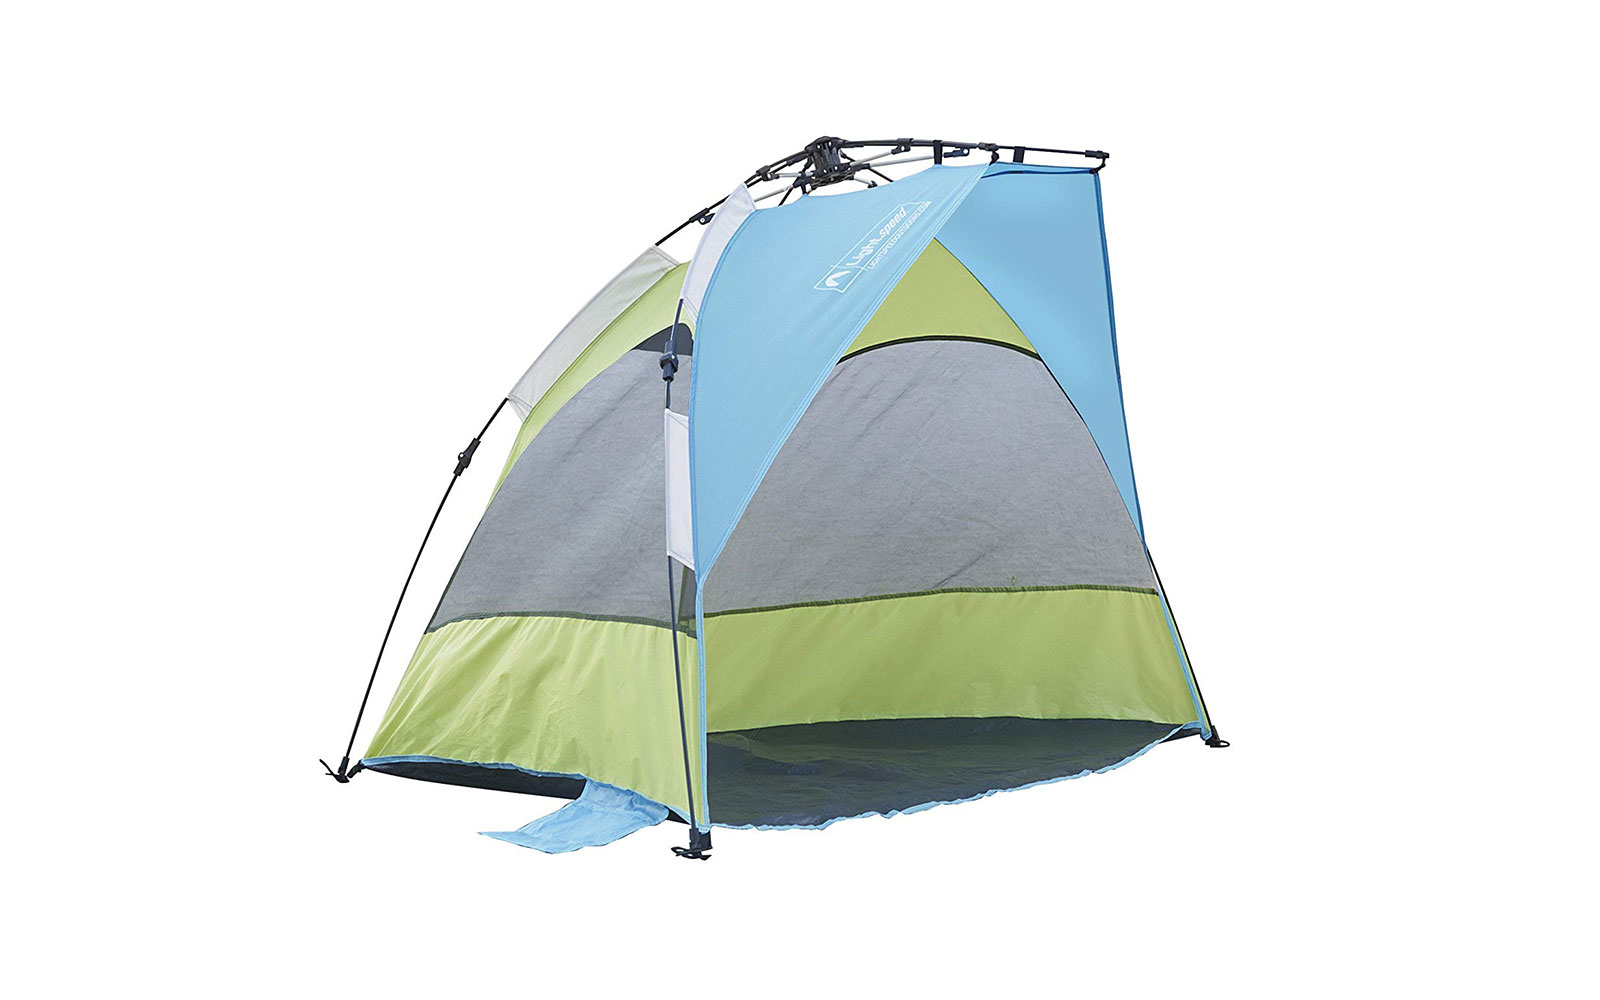 Lightspeed outdoors tent